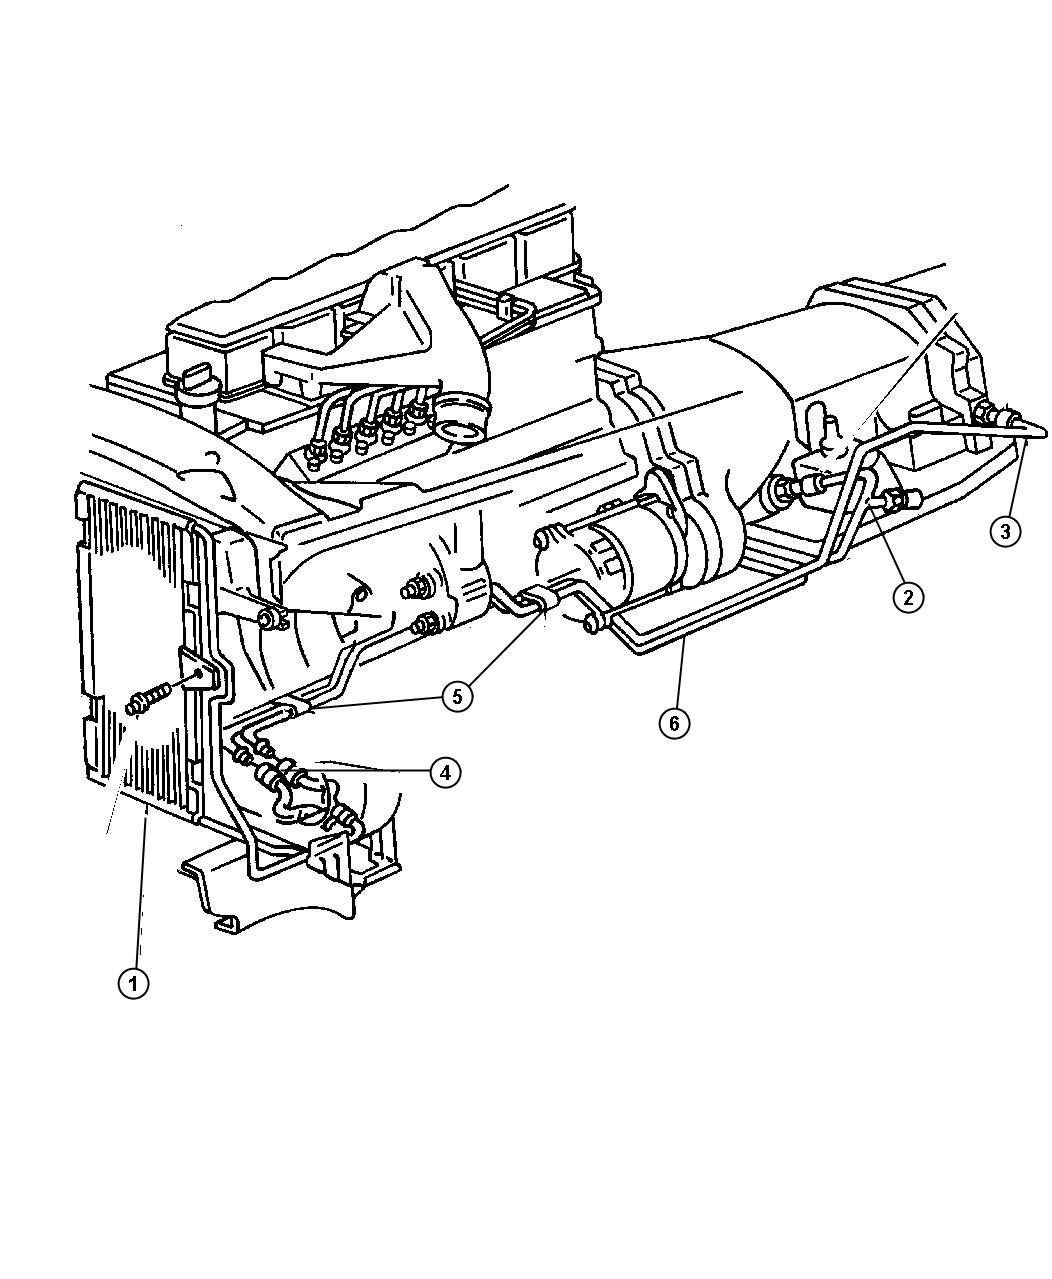 00i52608 100 [ 2003 dodge ram 1500 maintenance manual ] mdii wiring  at fashall.co